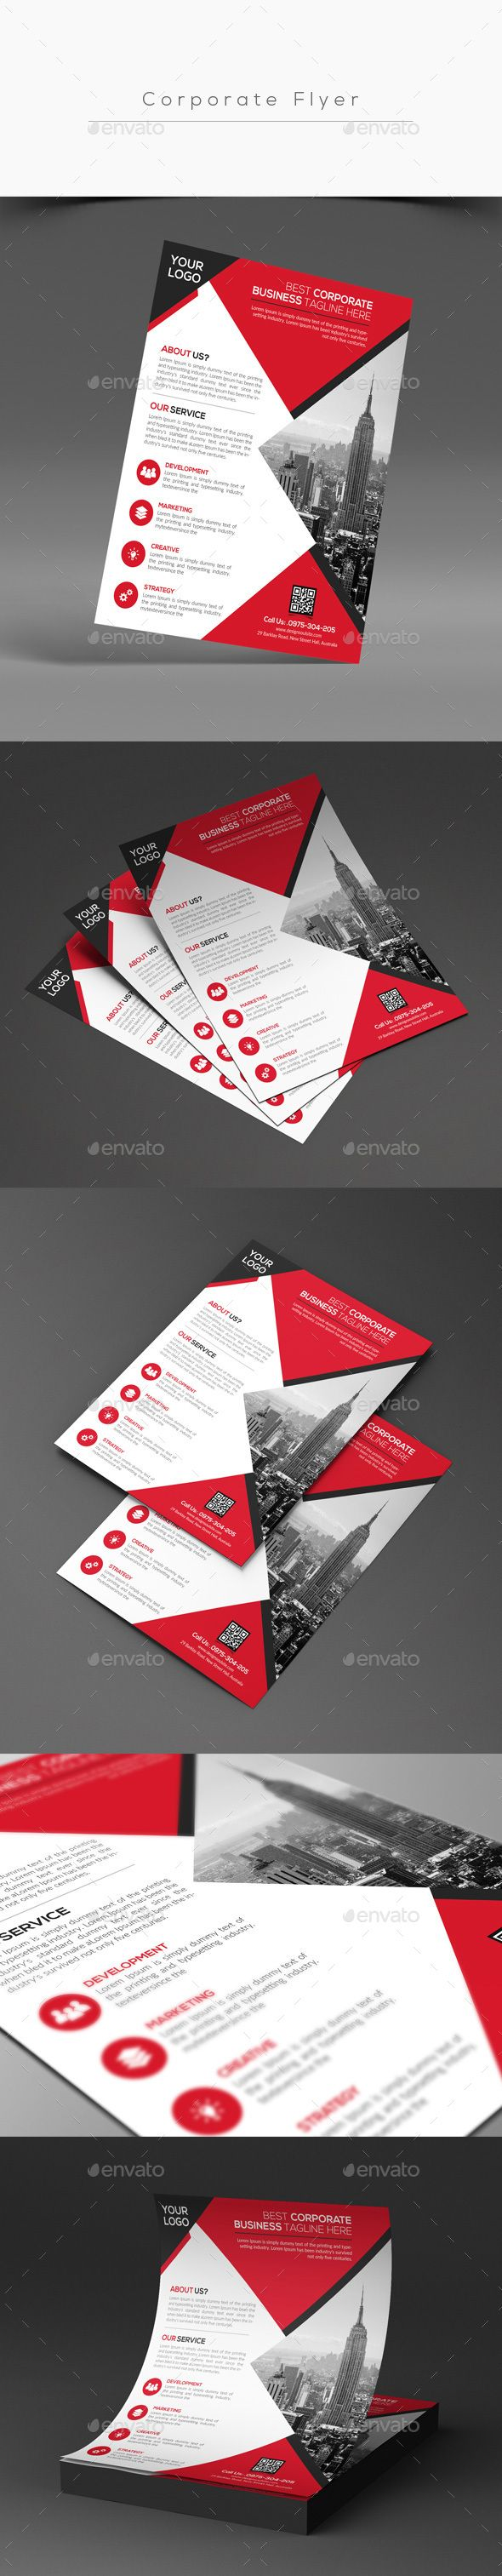 Corporate Flyer Template PSD #design Download: Http://graphicriver.net/